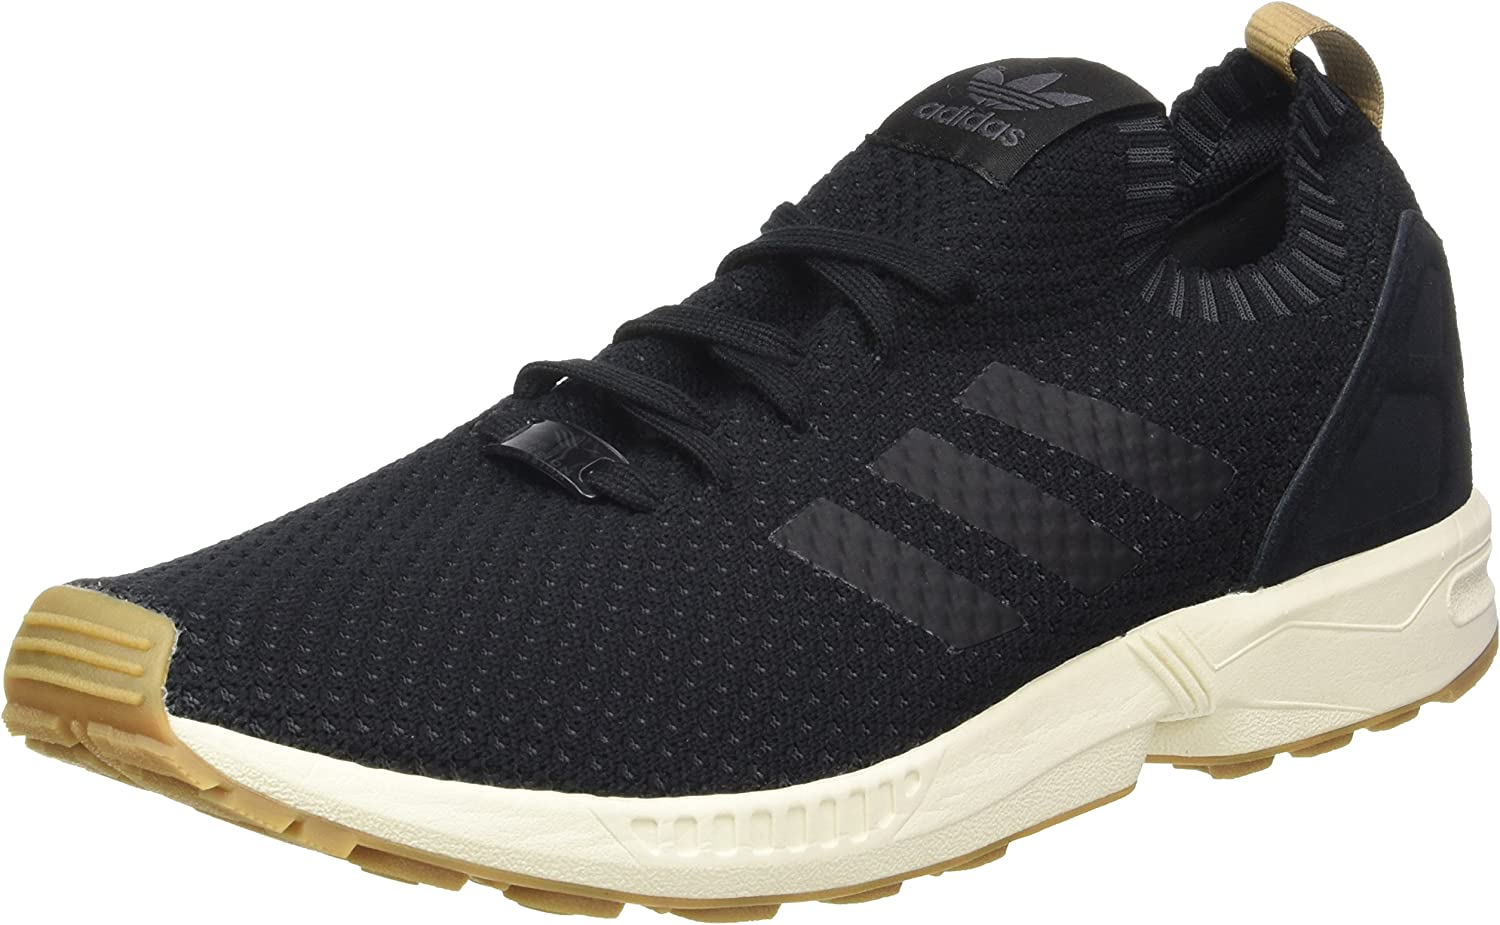 Adidas Originals Mens ZX Flux PK Trainers